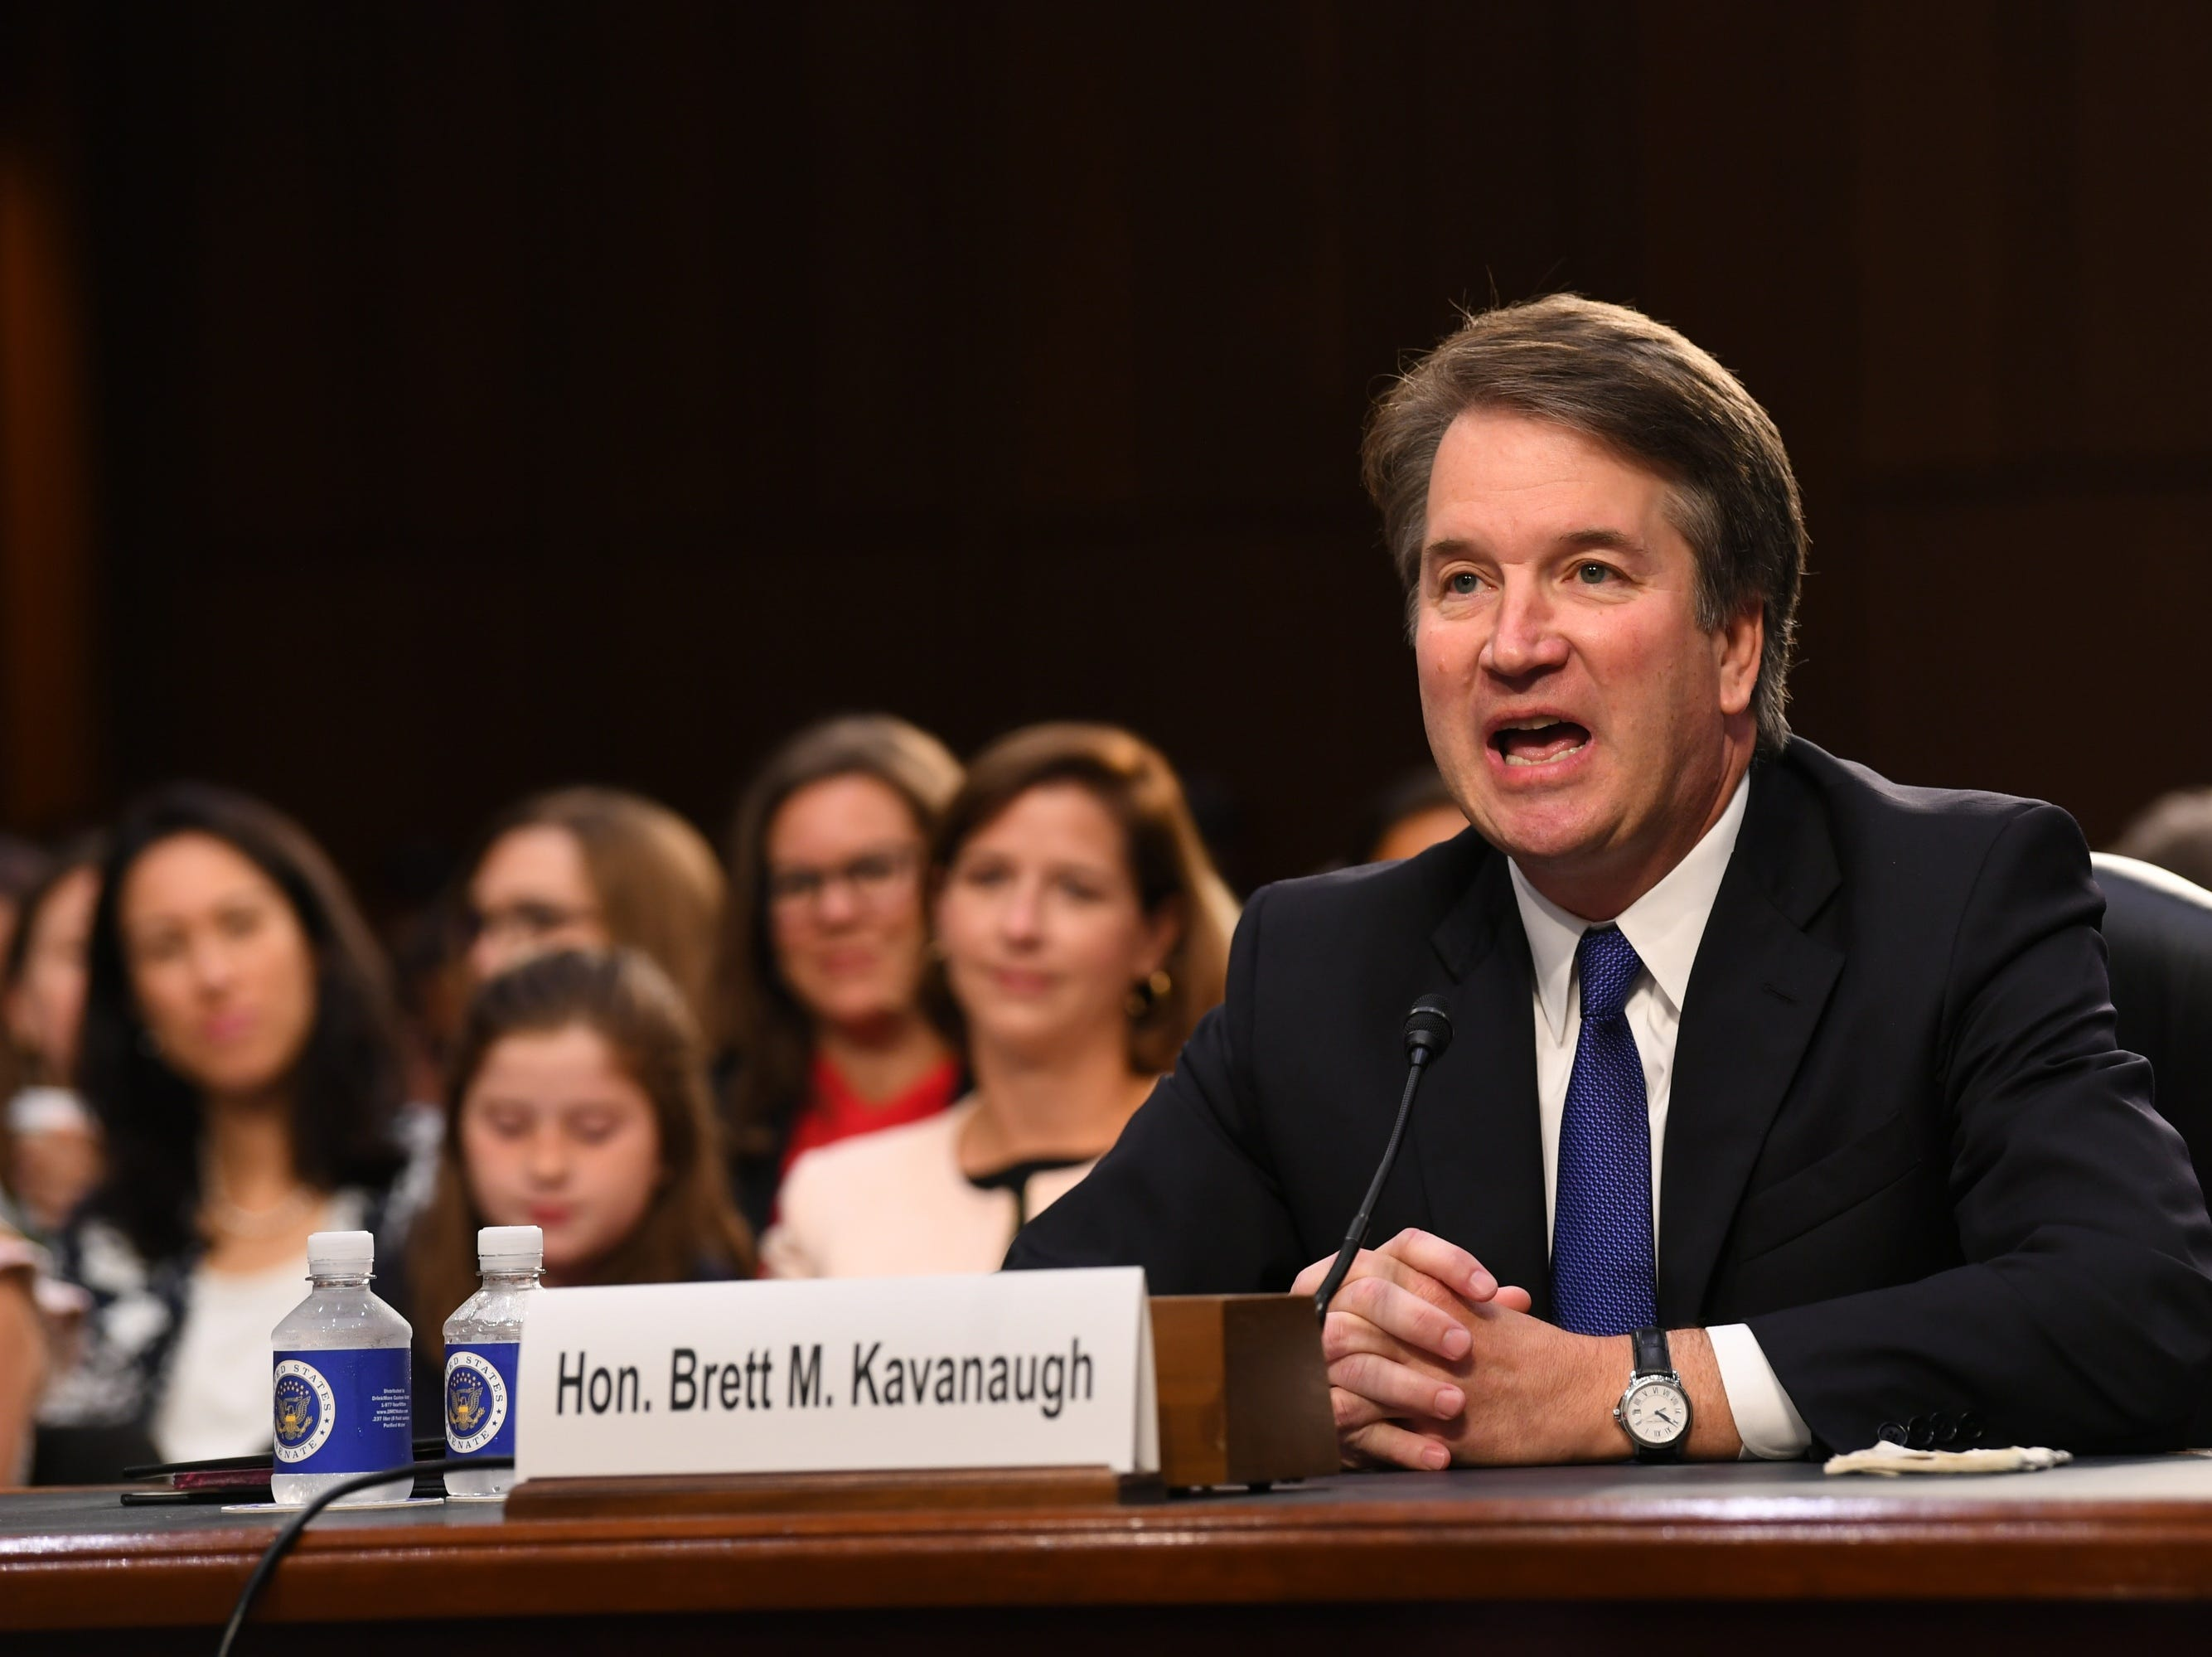 Supreme Court Associate Justice nominee Brett Kavanaugh appears before the Senate Judiciary Committee during his confirmation hearing on Sept. 4, 2018 in Washington.